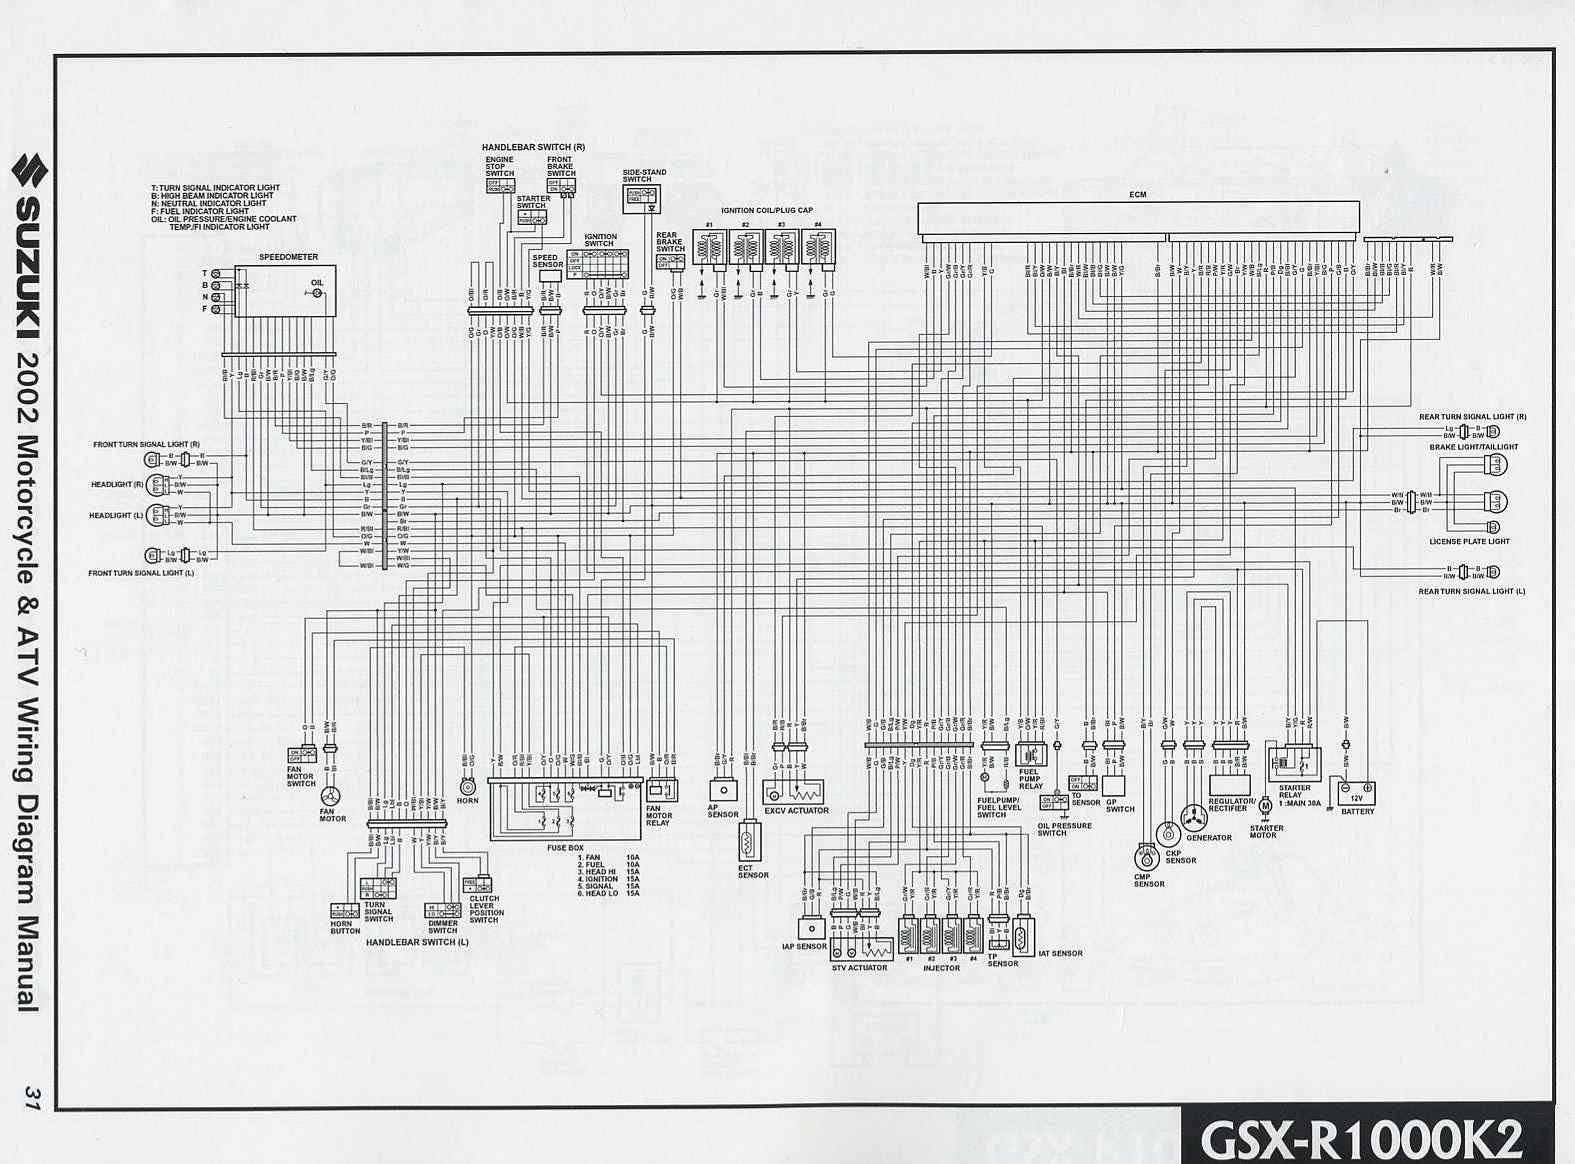 Suzuki Cbr Wiring Diagram Schematics 1998 Esteem Diagrams 2002 Gsxr 1000 Trusted 2001